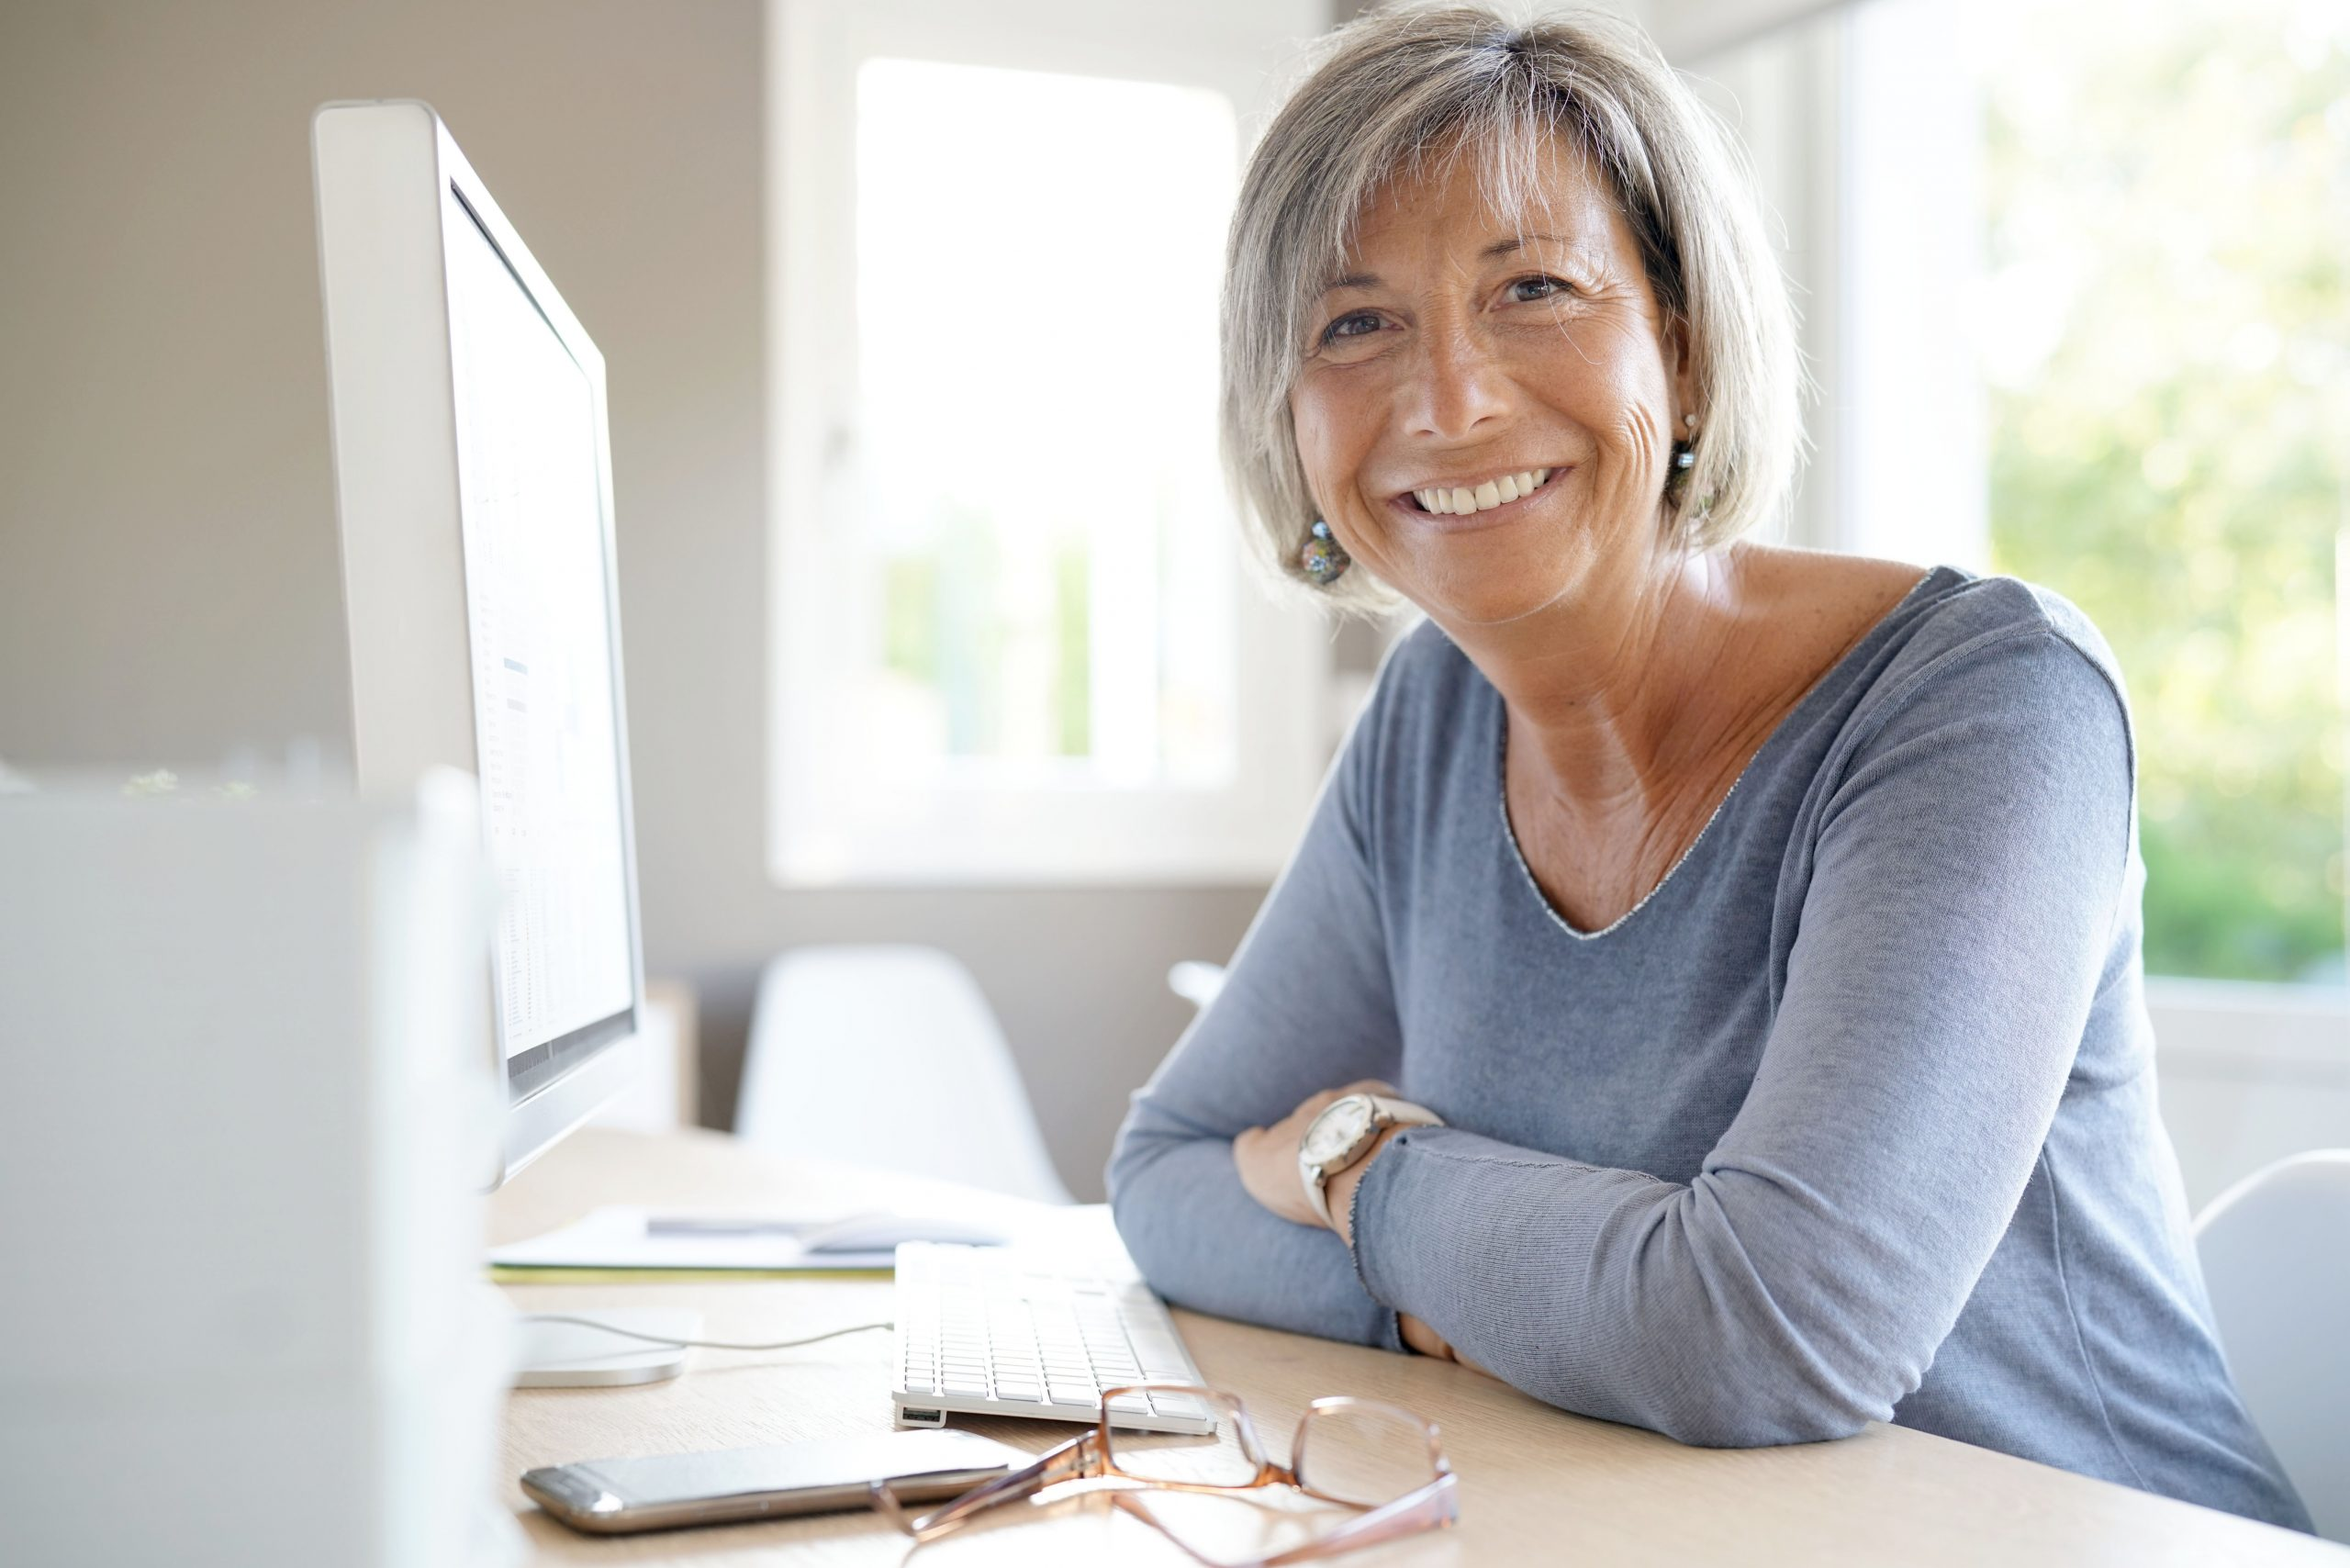 Portrait of mature businesswoman working on desktop